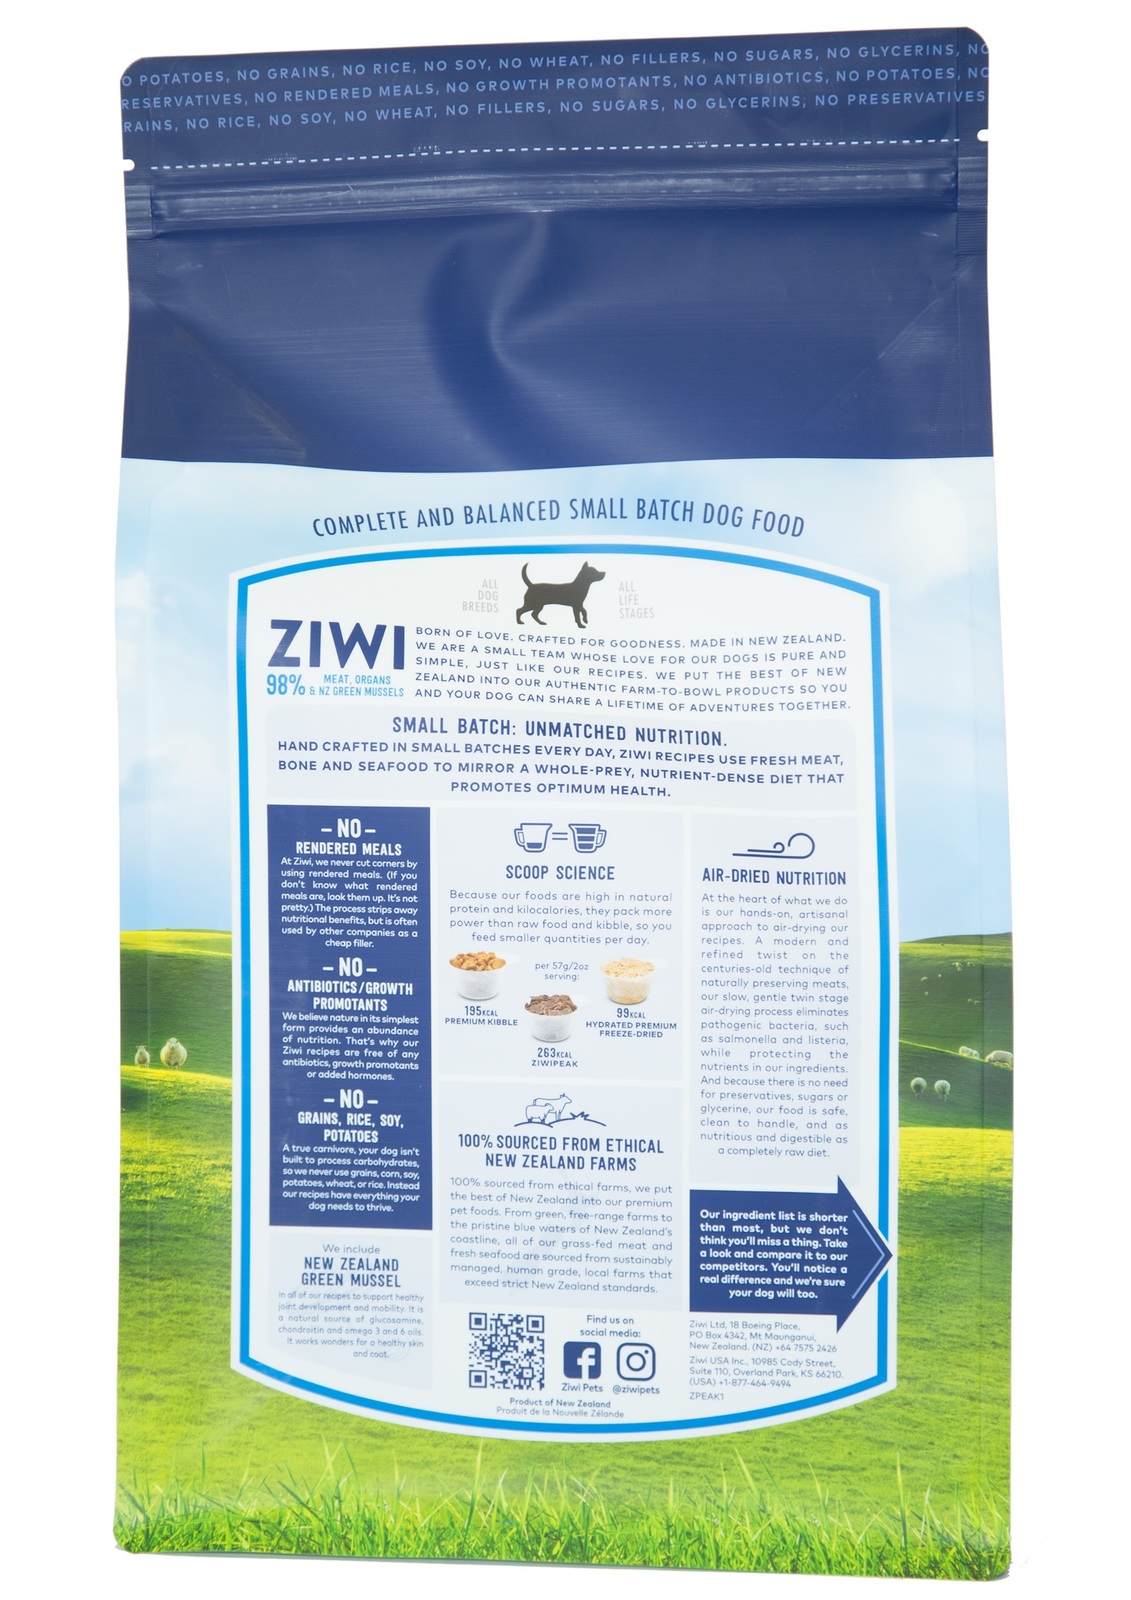 Ziwi Peak Air Dried Dog Food 2.5kg Pouch - Free Range Lamb image 1